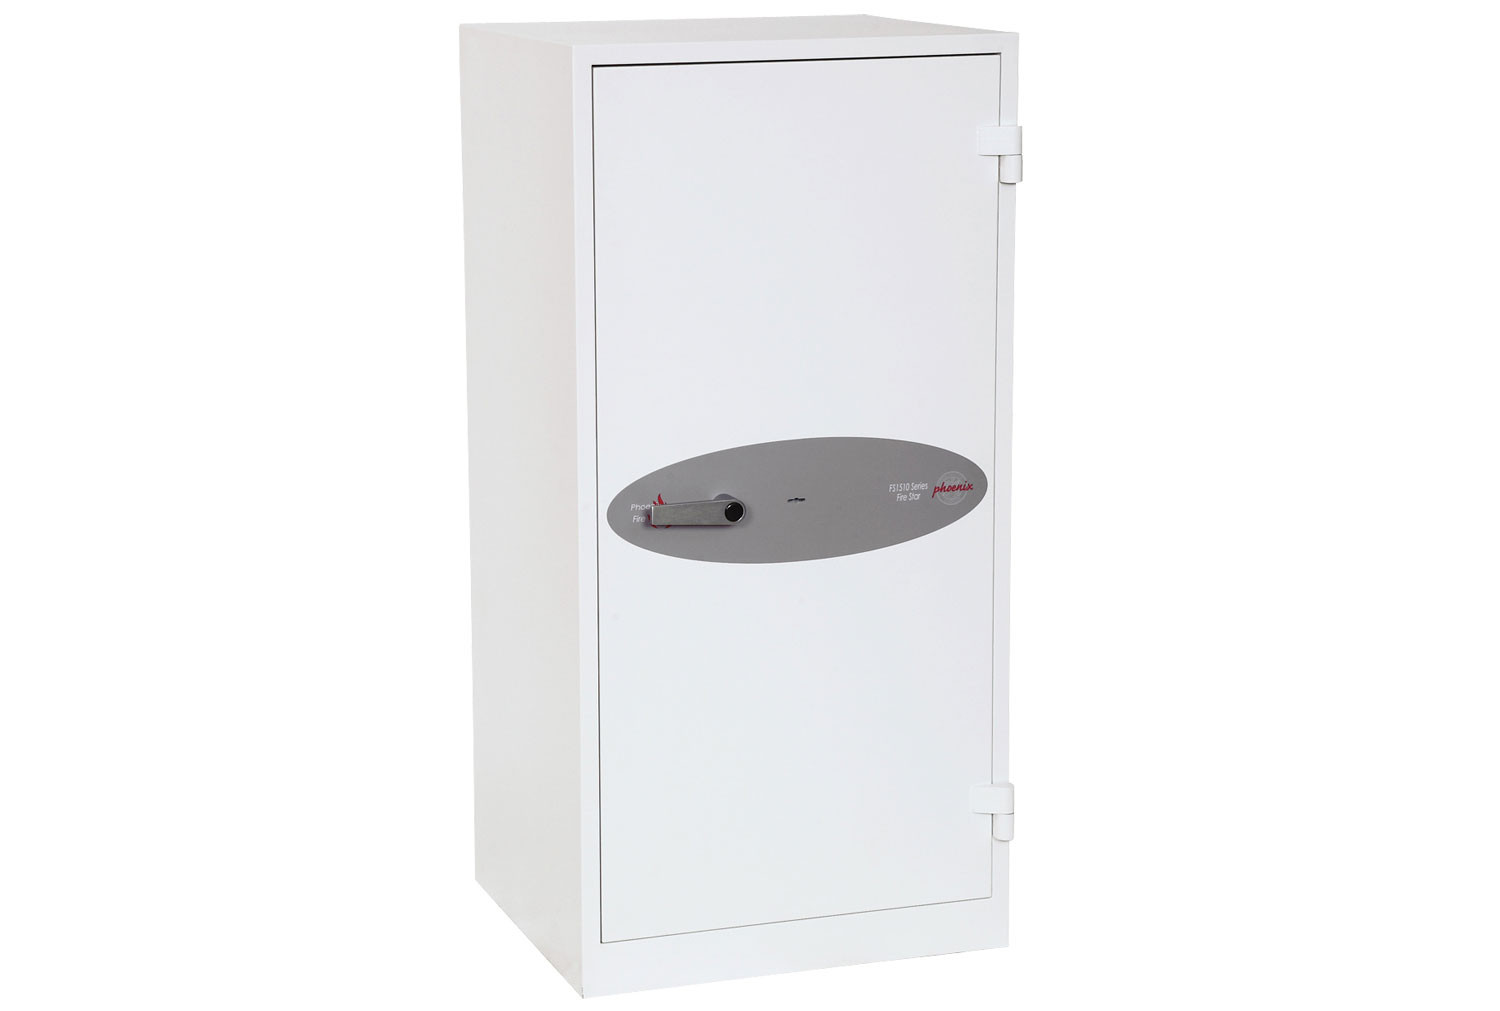 Phoenix Firechief FS1651K Fire Safe With Key Lock (230ltrs)